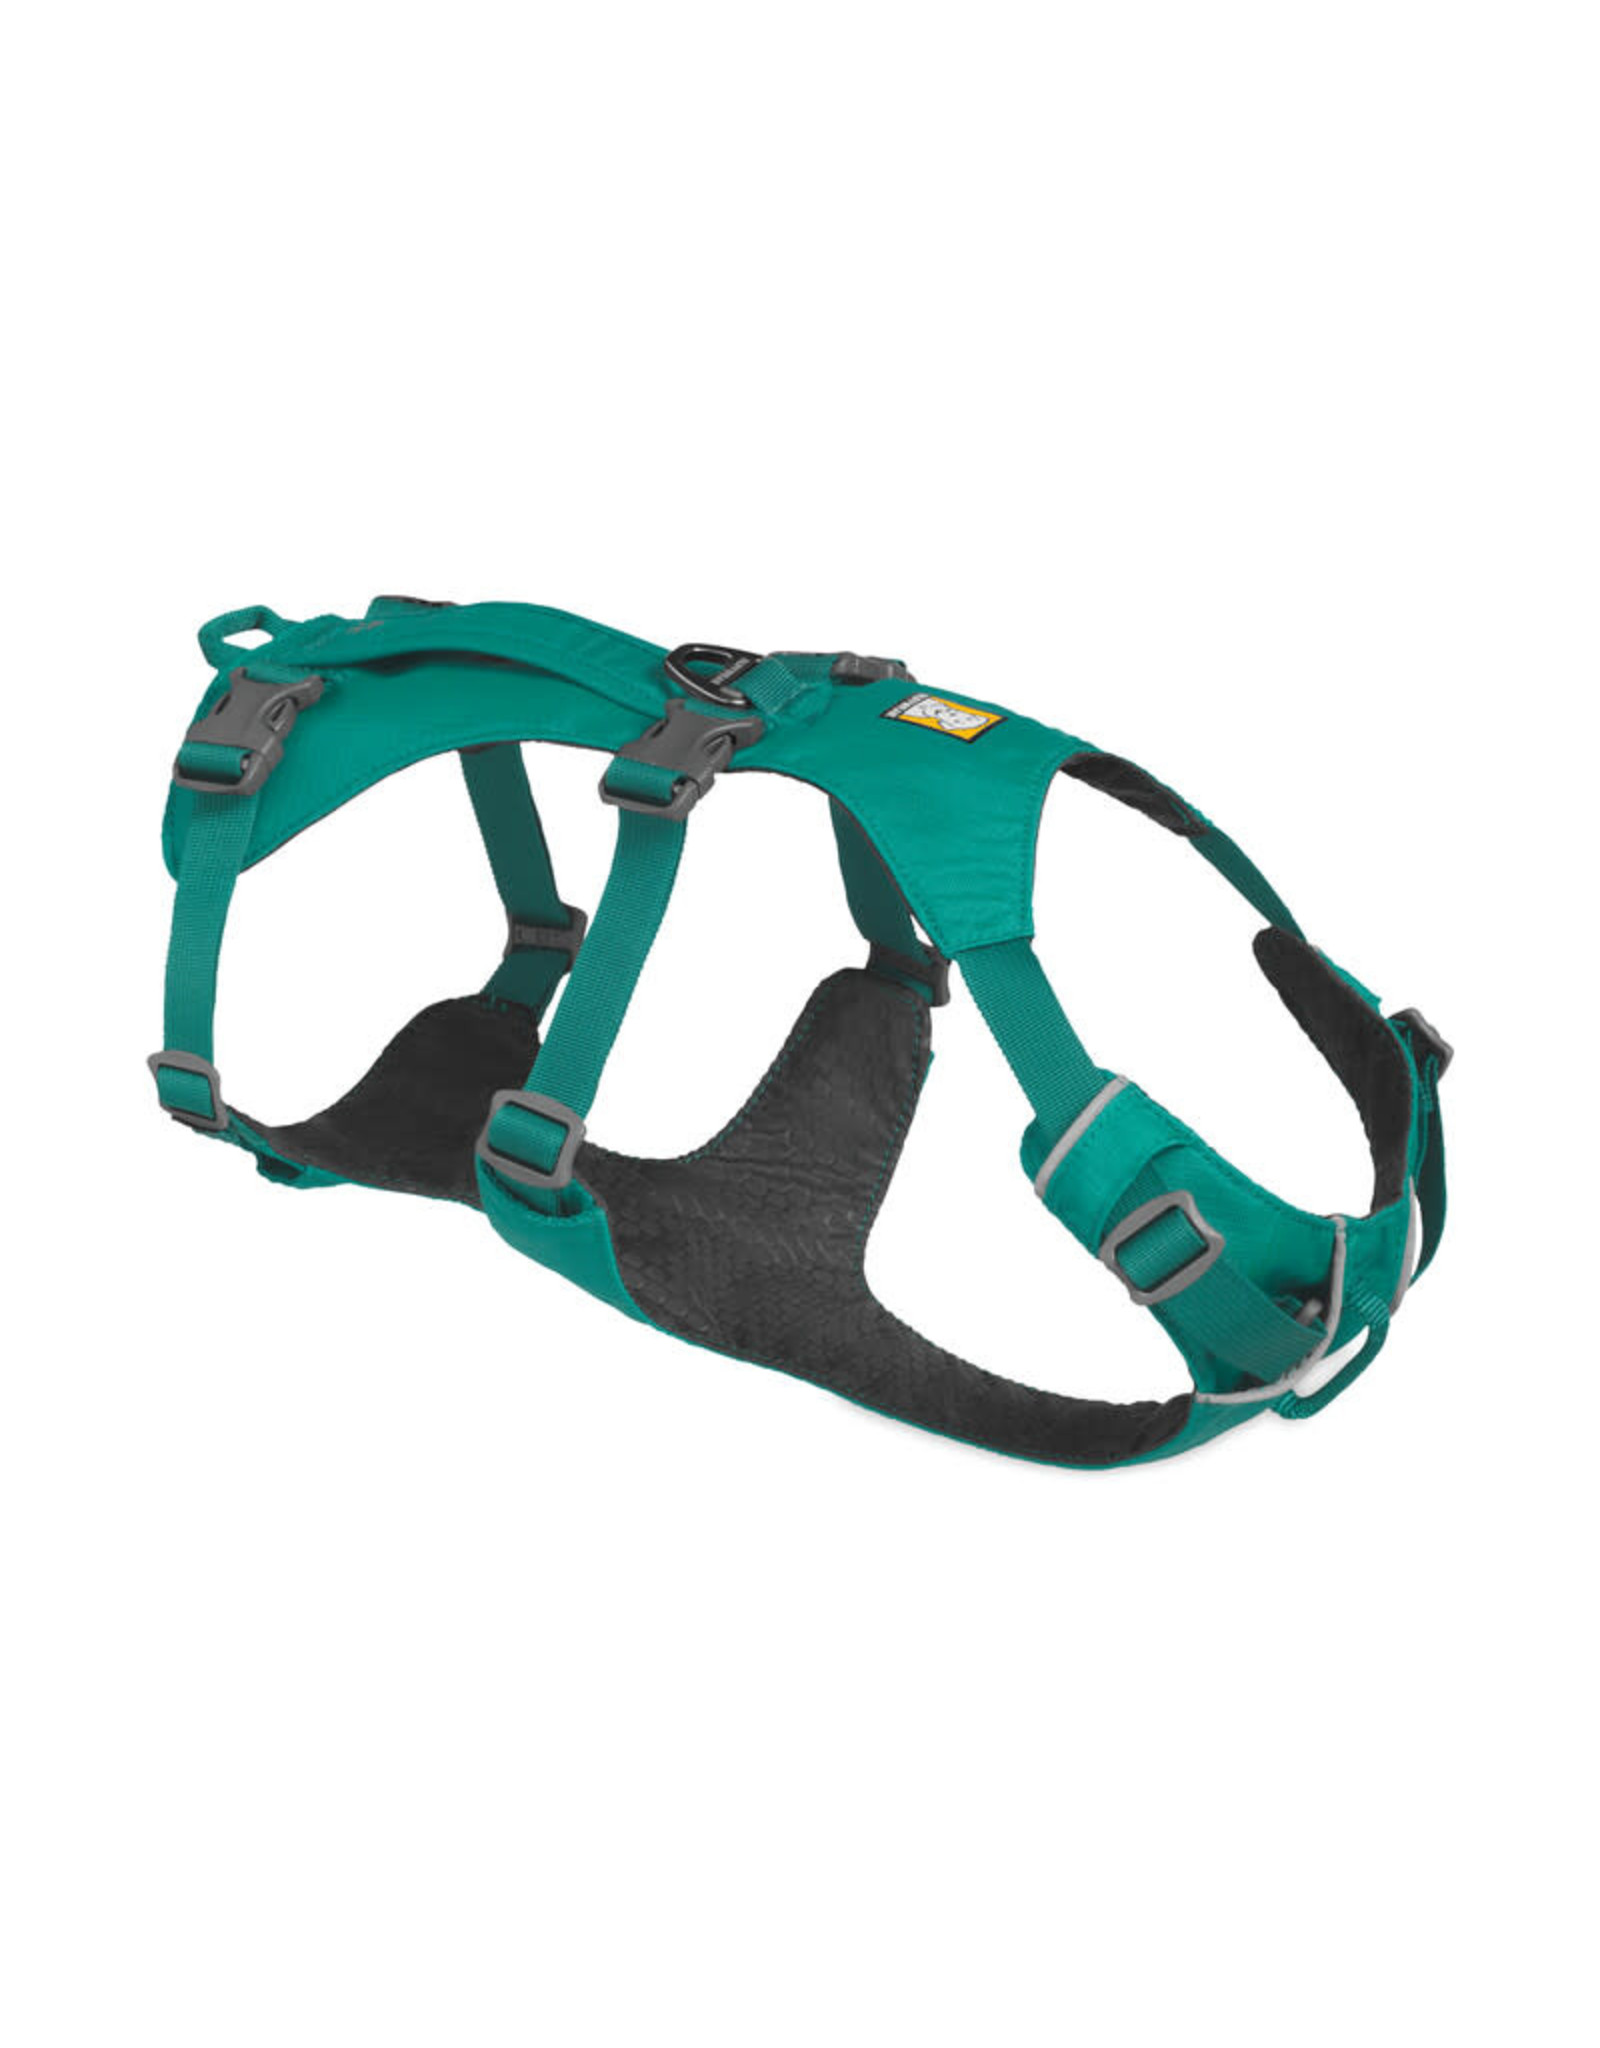 Ruffwear Flagline Harness: Meltwater Teal, L/XL